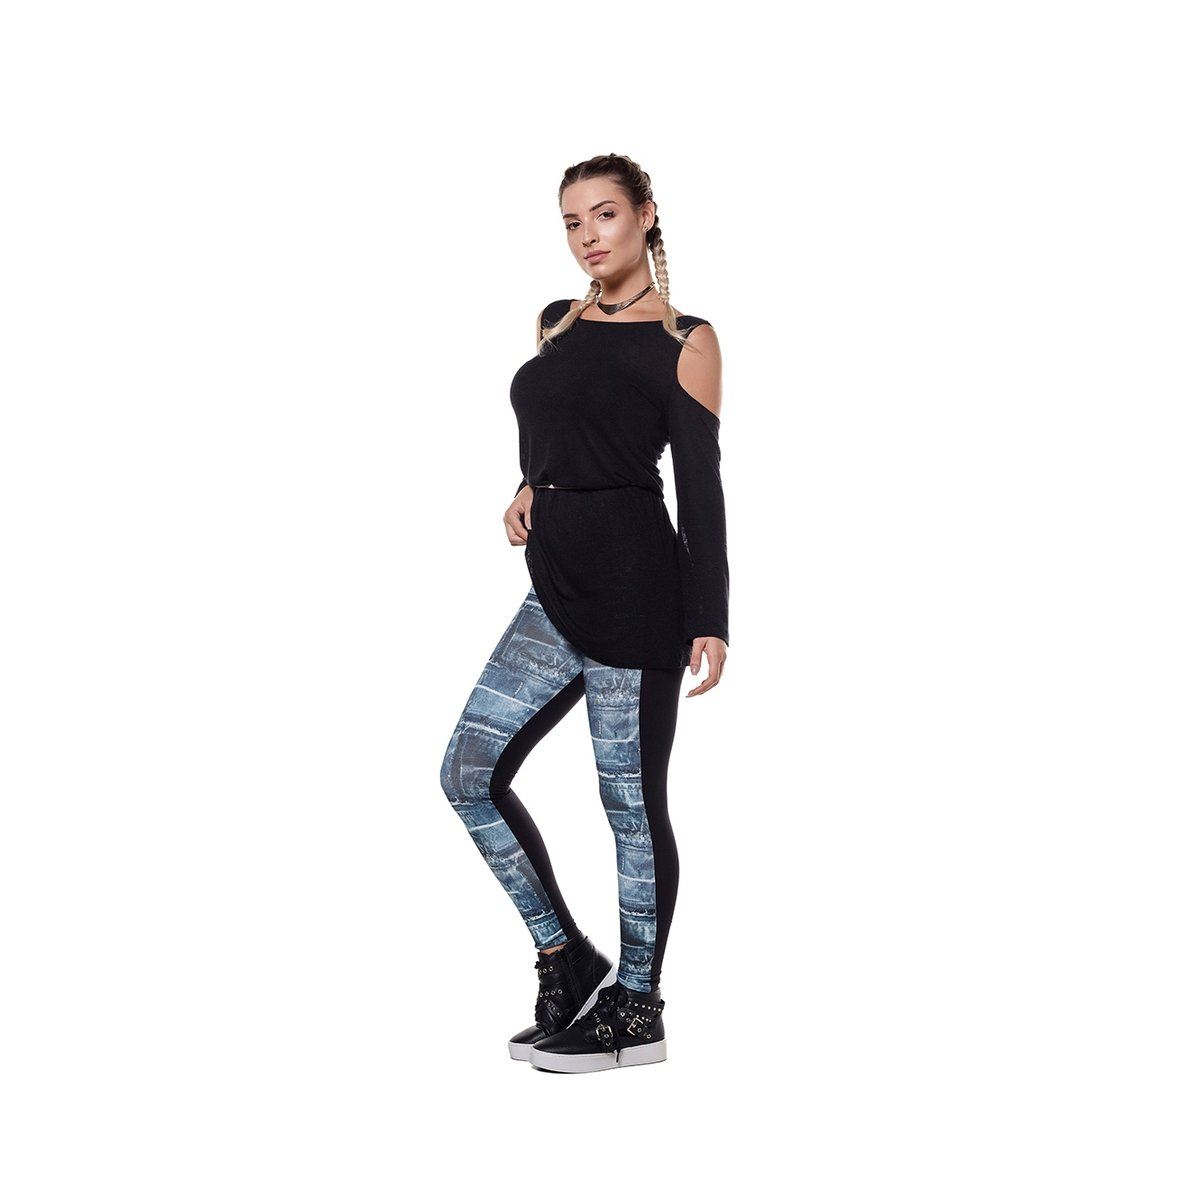 Feminina Legging Legging Compression Jeans Abusy Compression Abusy Feminina Azul Jeans Ivq8gBw